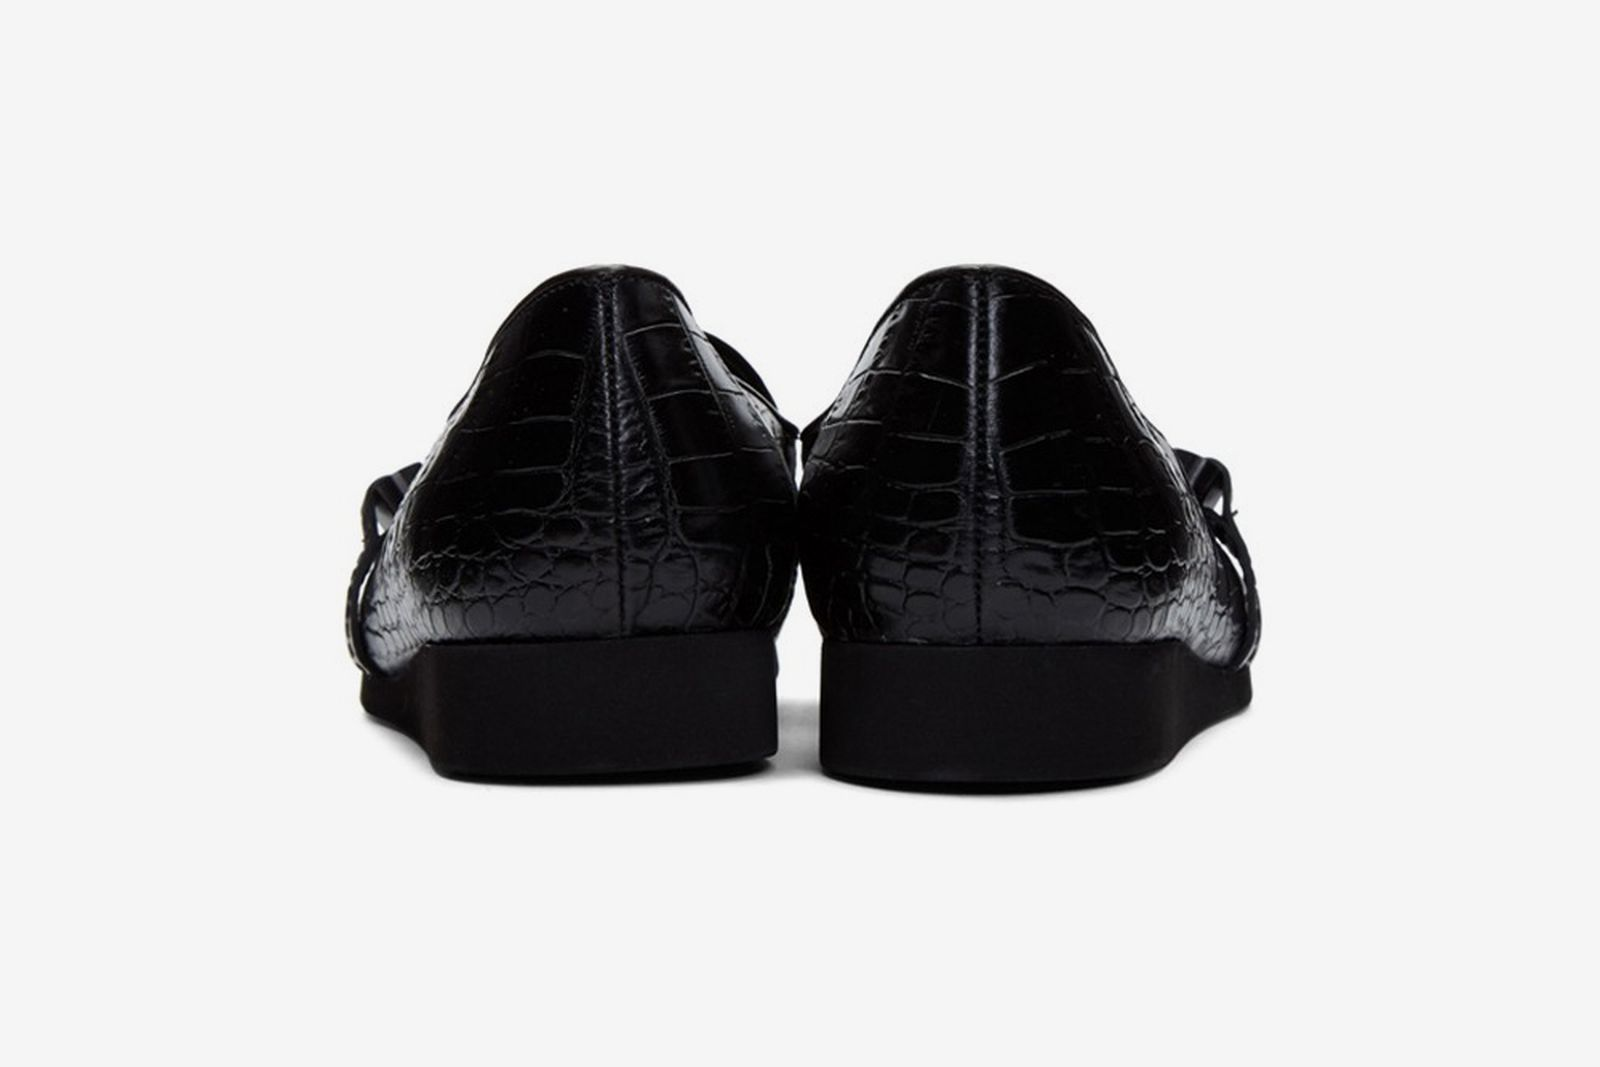 1017 ALYX 9SM St. Marks Buckle Loafers